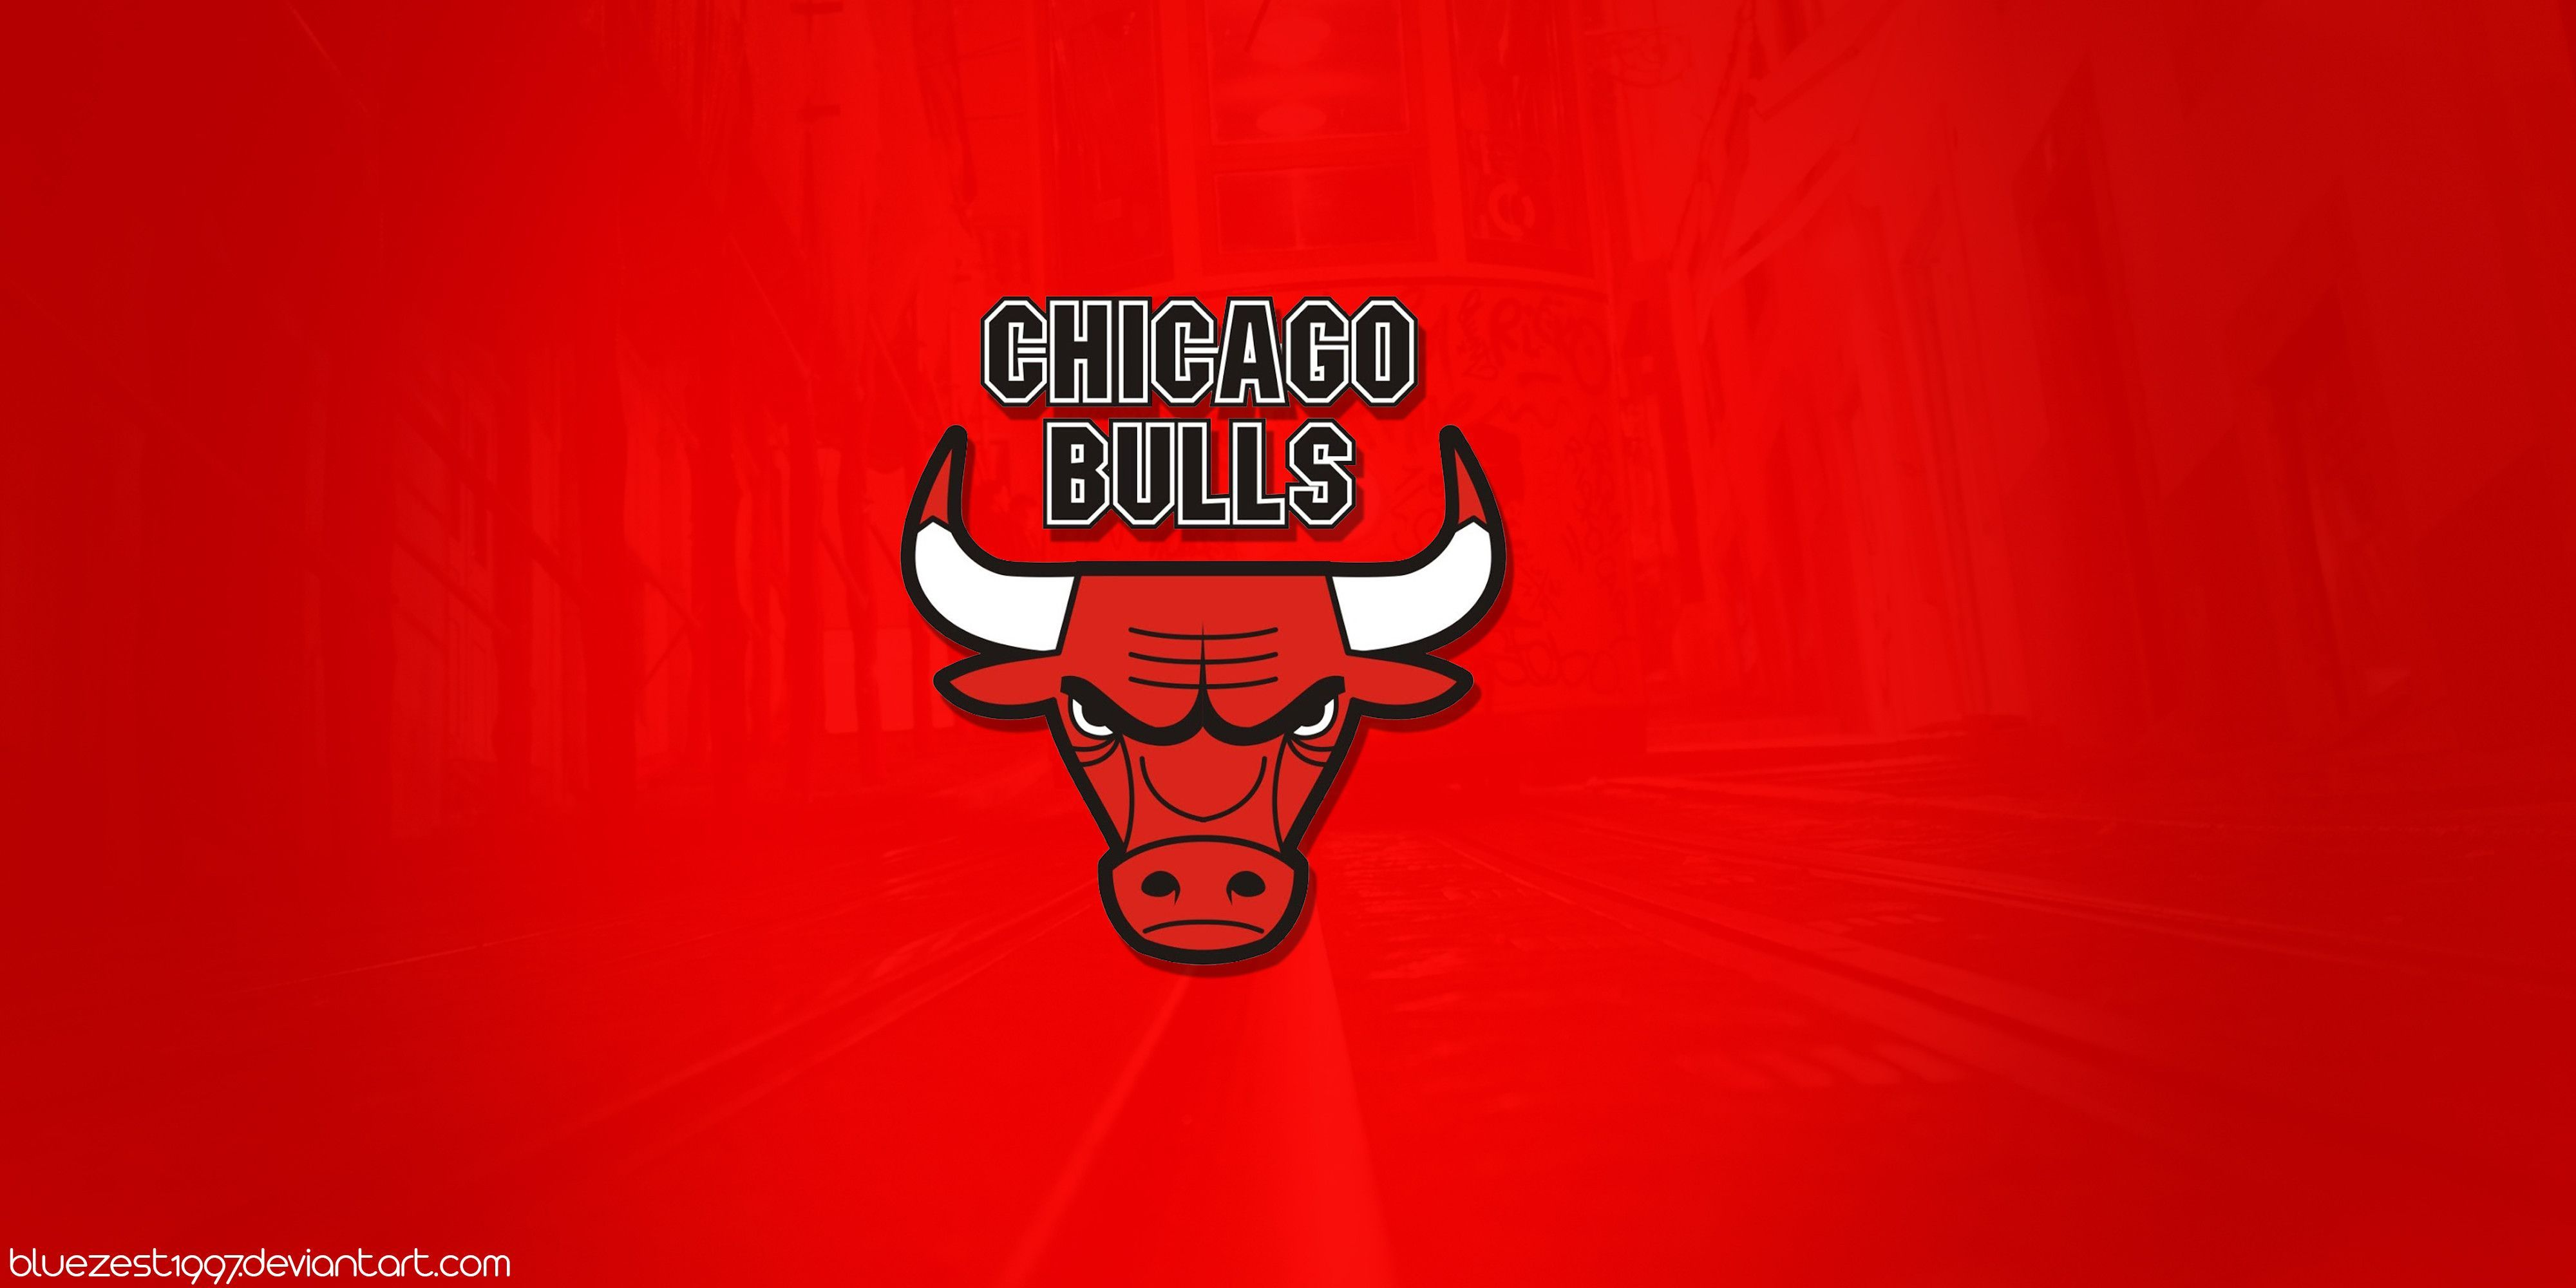 Chicago bulls wallpapers hd wallpaper hd wallpapers pinterest chicago bulls wallpapers hd wallpaper voltagebd Images